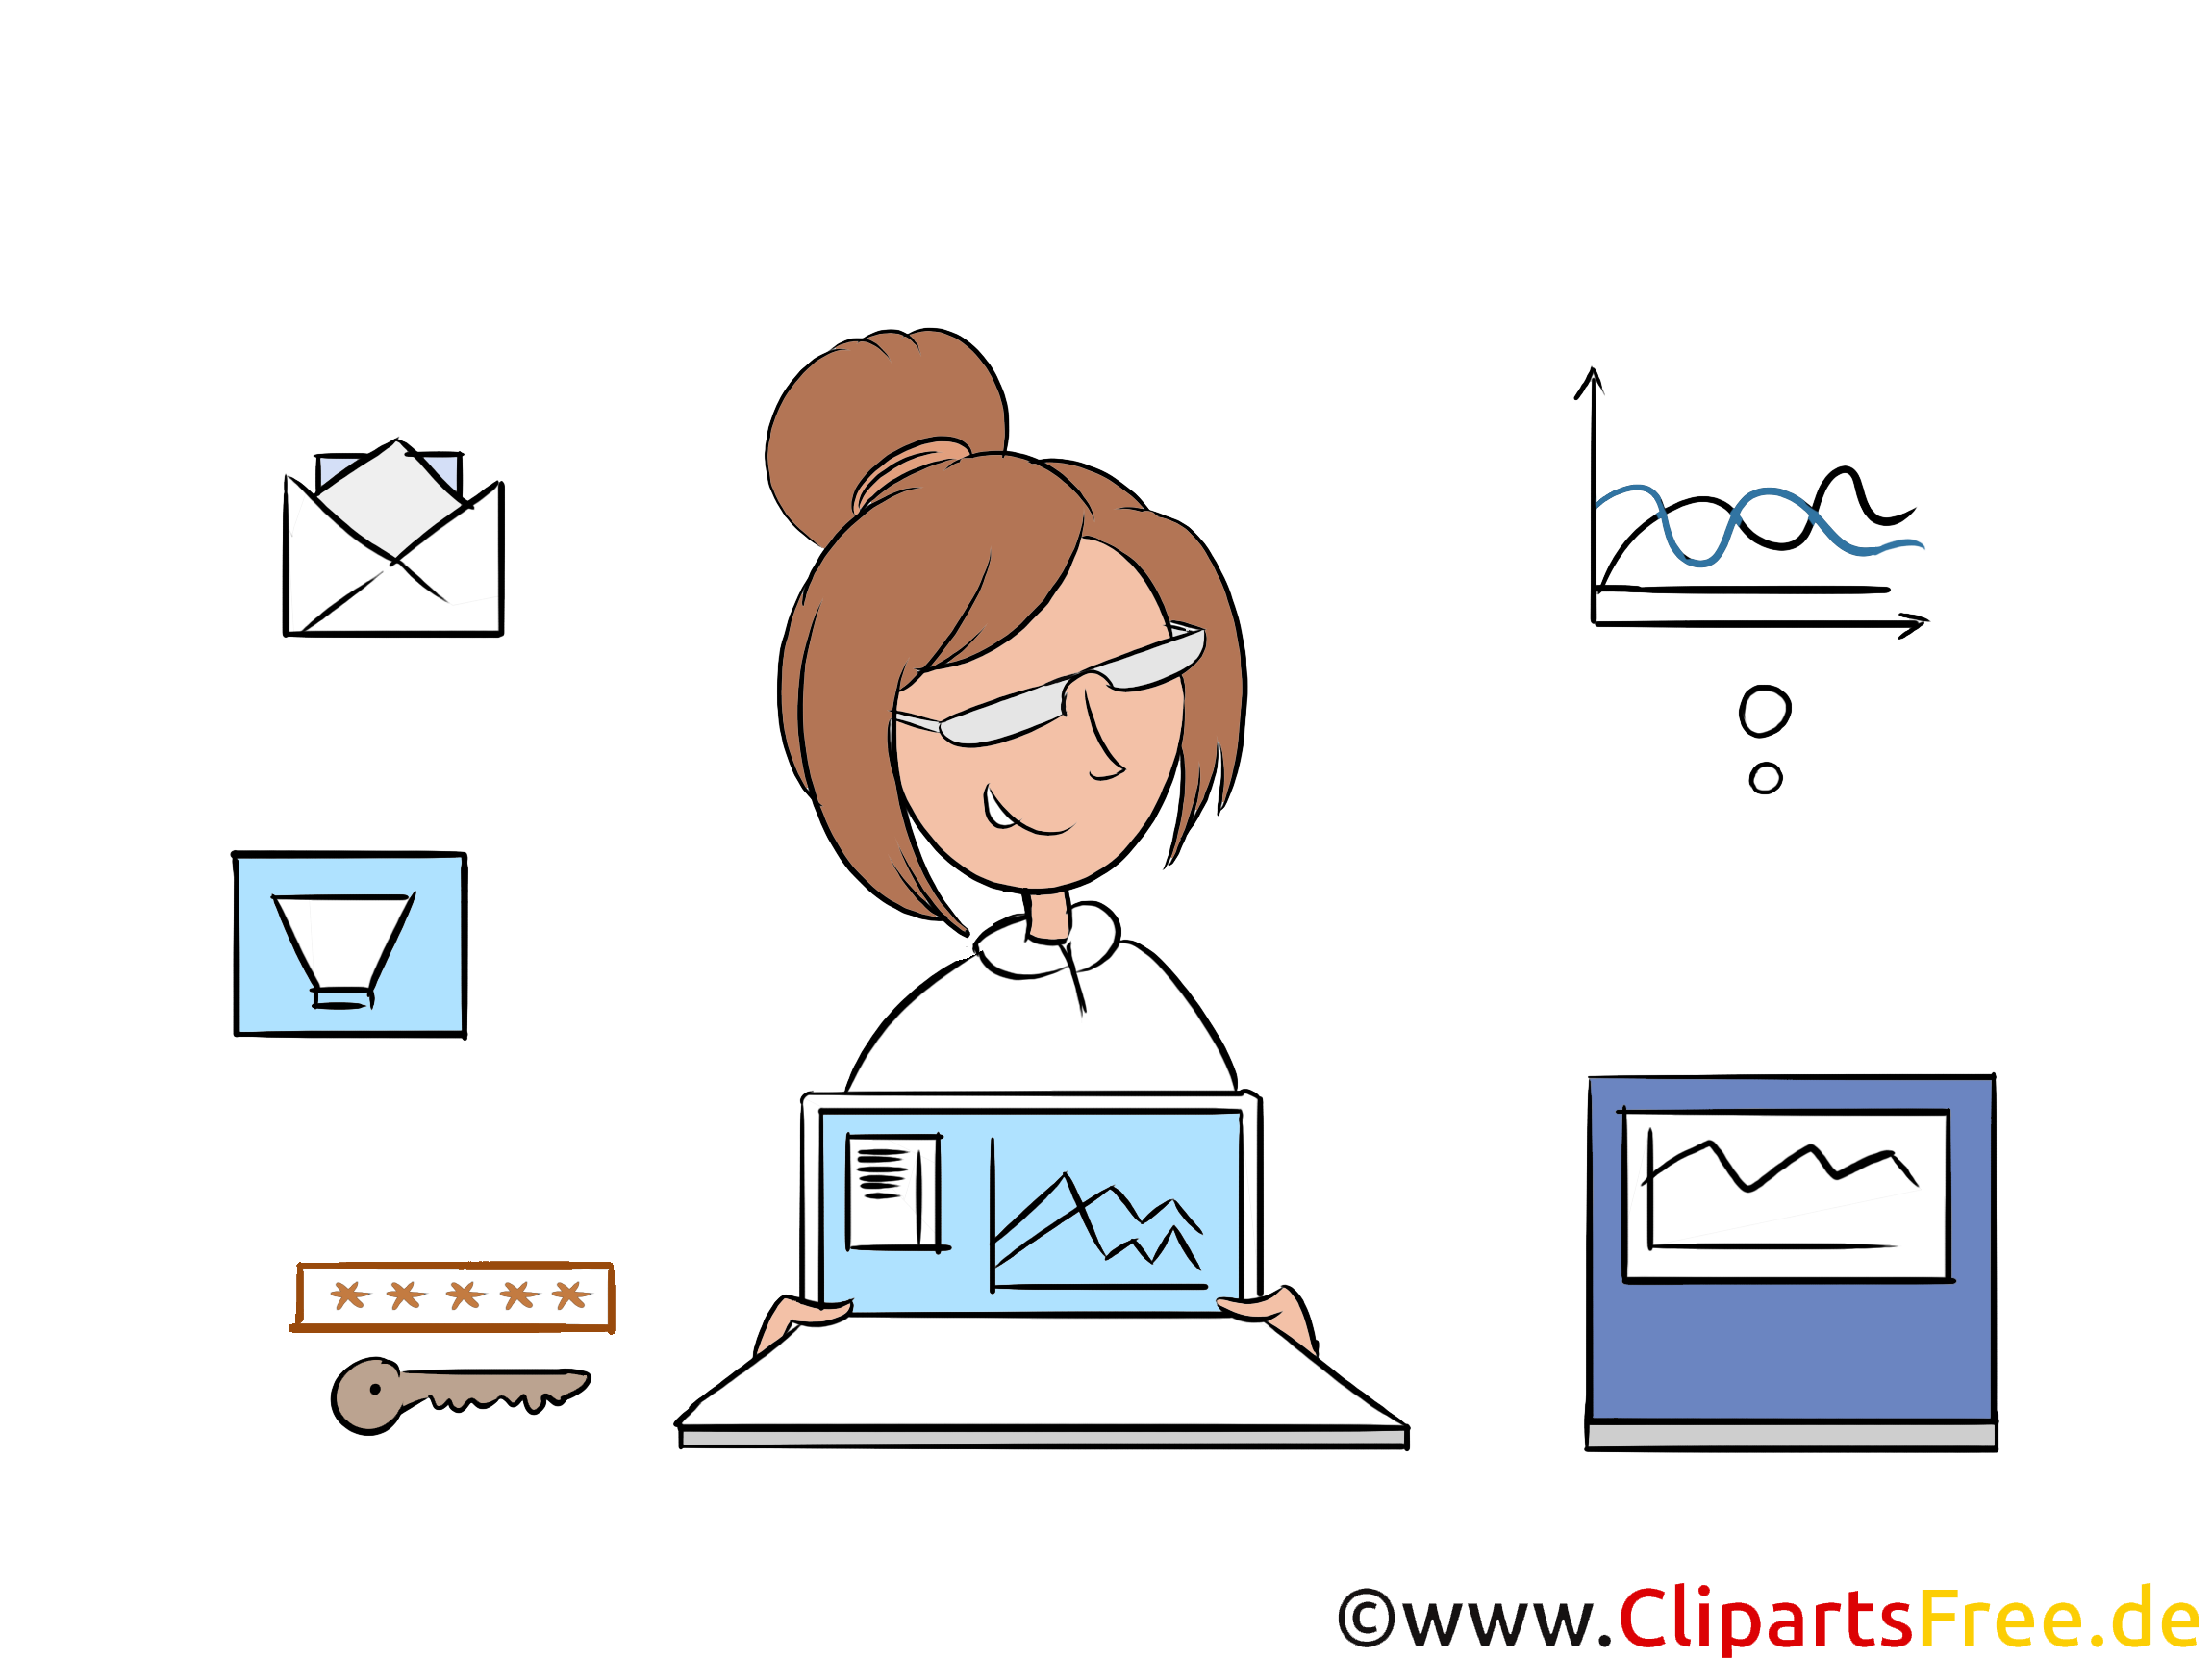 Homeoffice Clipart, Bild, Illustration